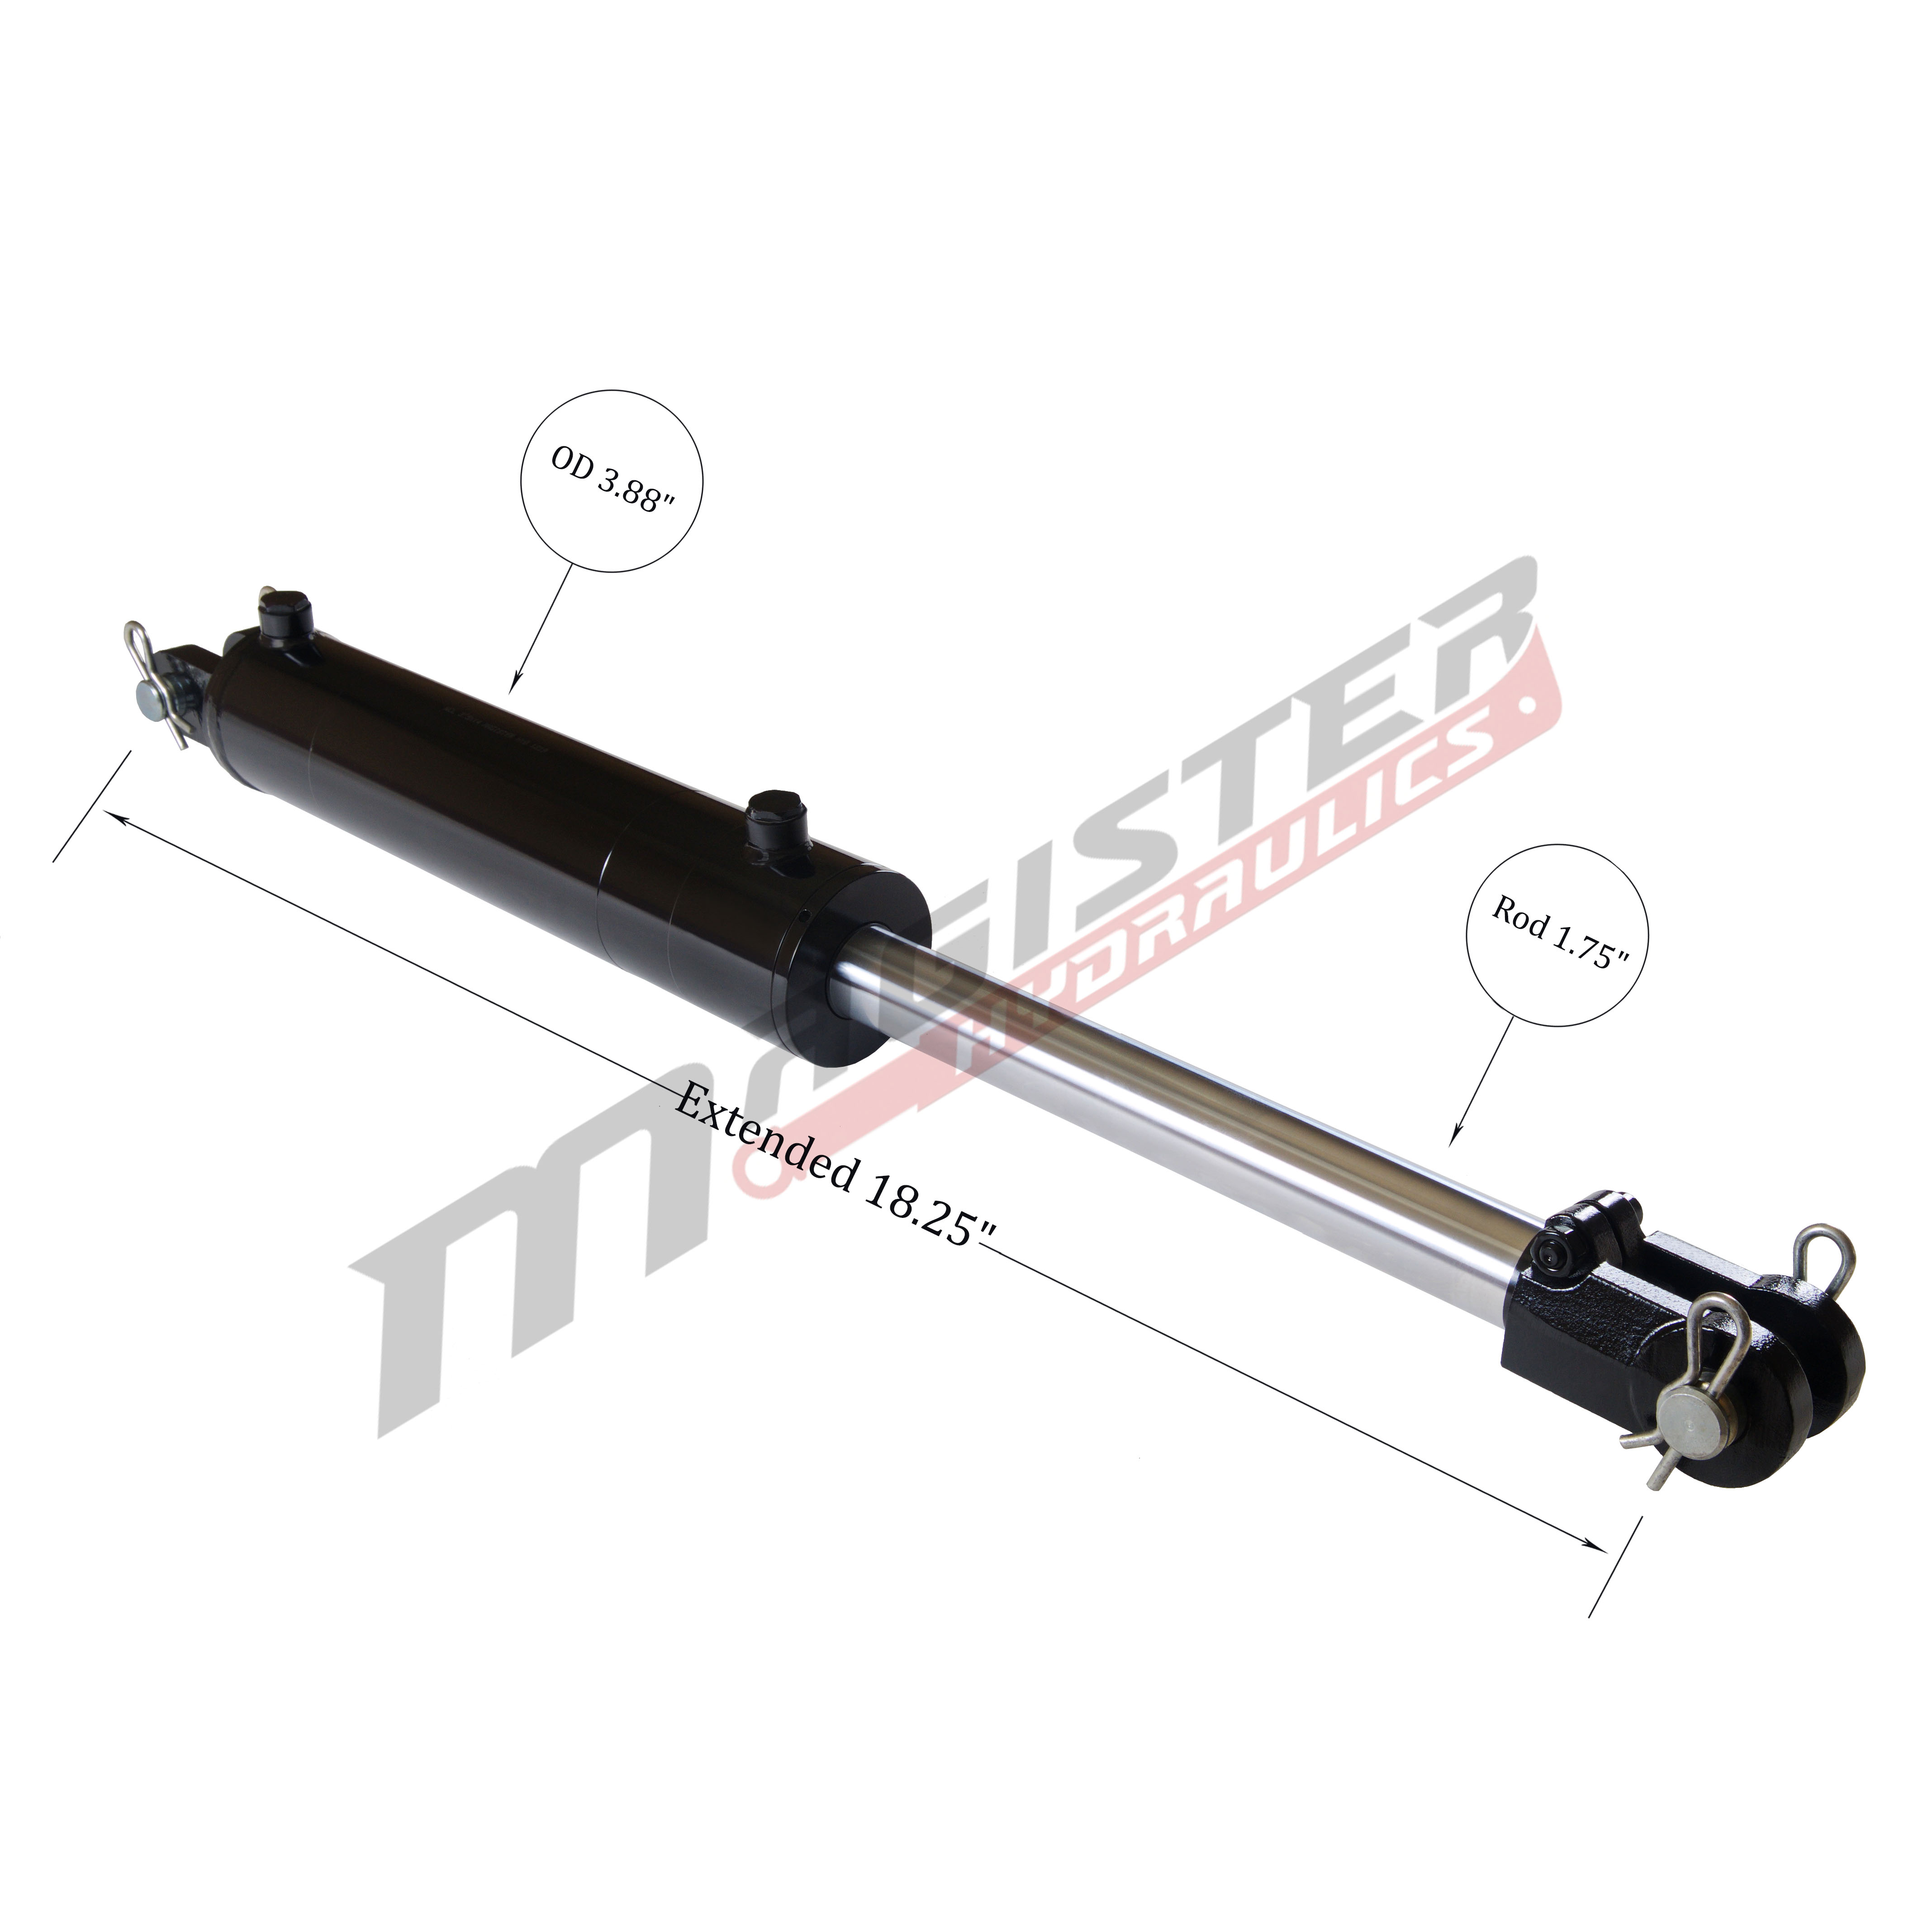 3.5 bore x 4 stroke hydraulic cylinder, welded clevis double acting cylinder | Magister Hydraulics